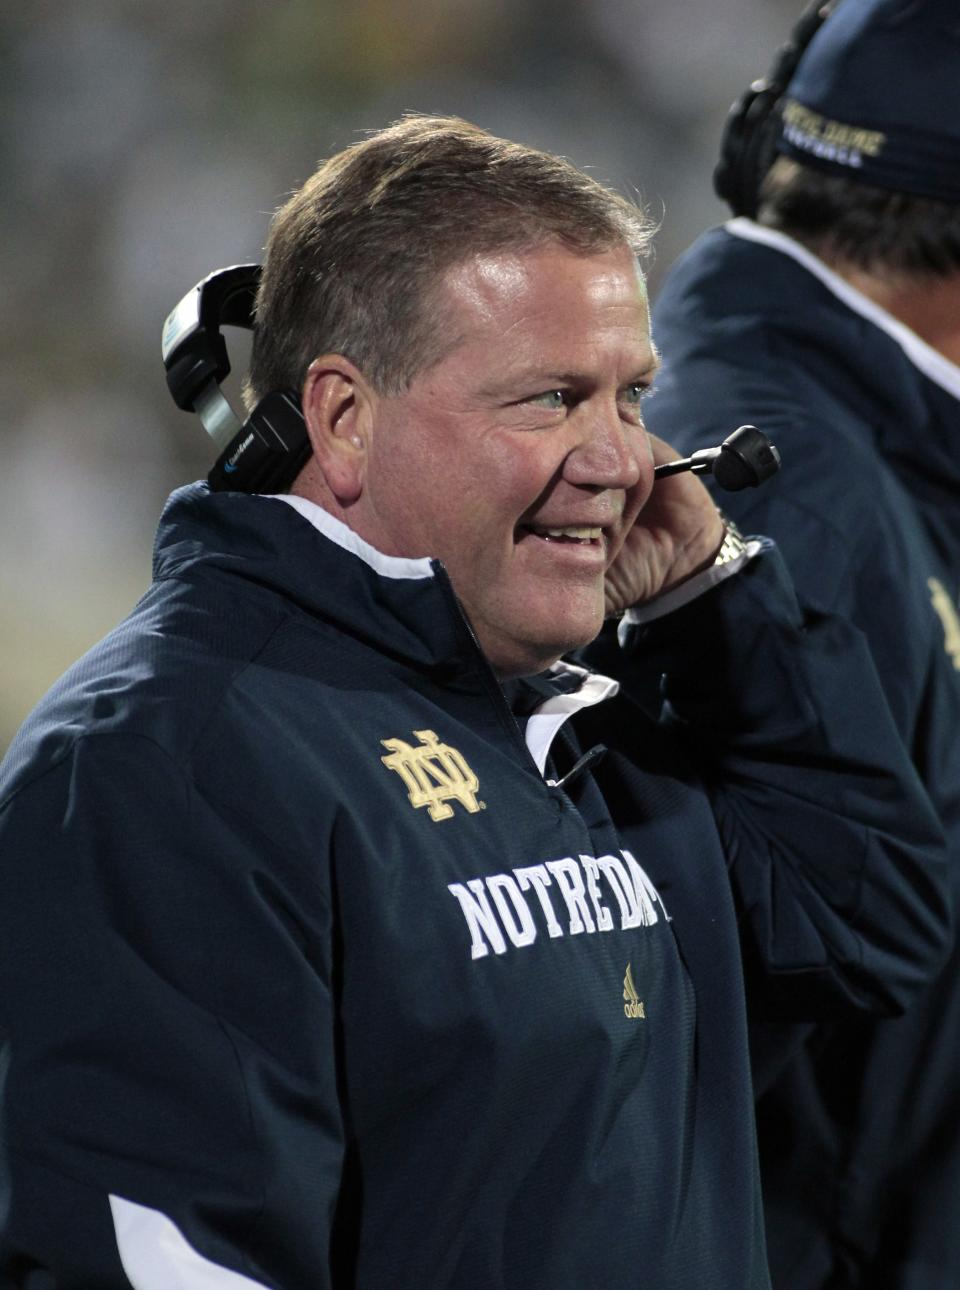 Notre Dame coach Brian Kelly stands on the sideline during the first quarter of an NCAA college football game against Michigan State, Saturday, Sept. 15, 2012, in East Lansing, Mich. (AP Photo/Al Goldis)